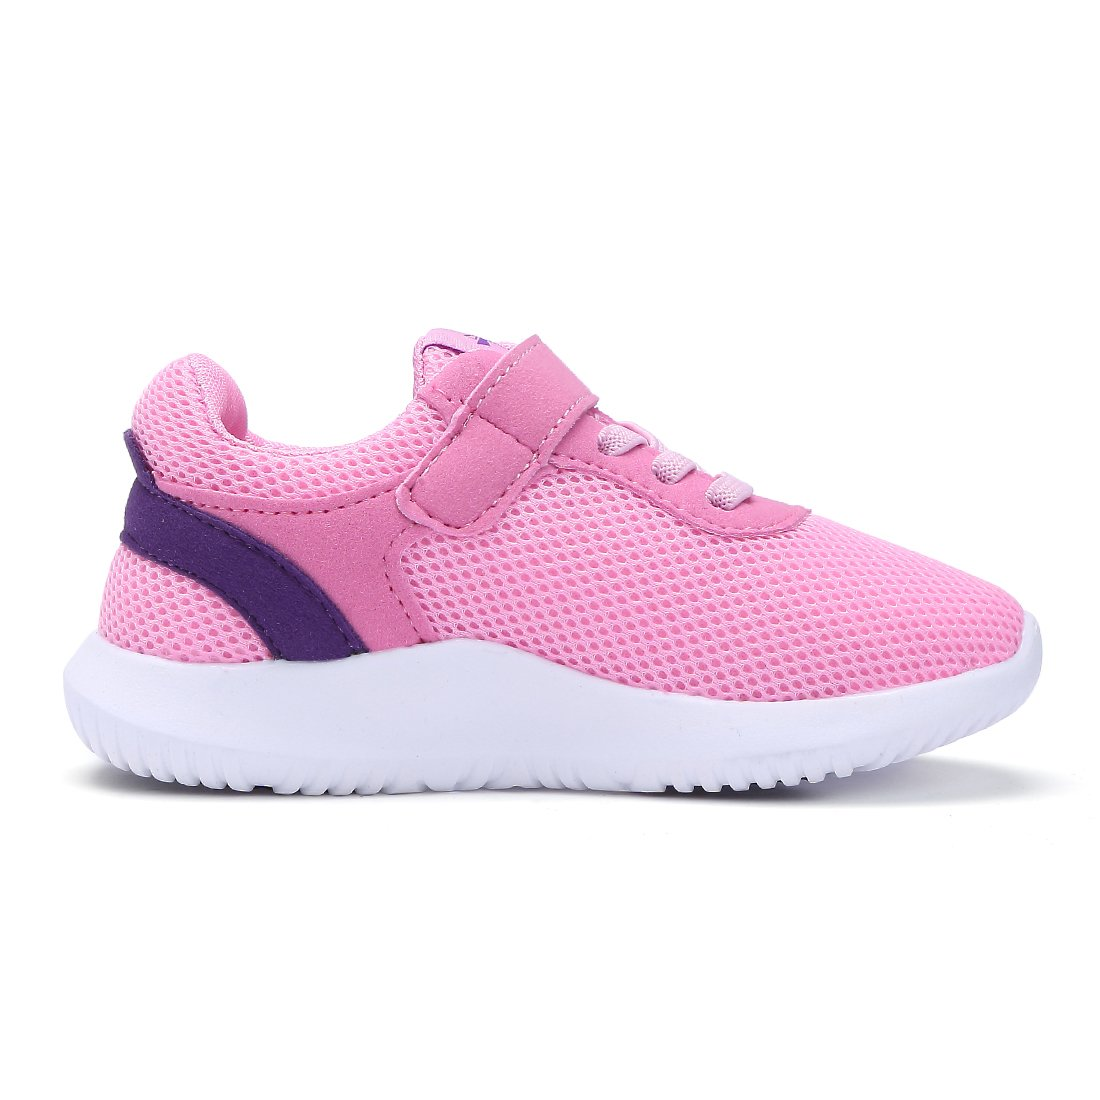 BTDREAM Boy and Girl's Breathable Fashion Sneakers Athletic Outdoor Sports Running Shoes Pink Size 26 by BTDREAM (Image #2)